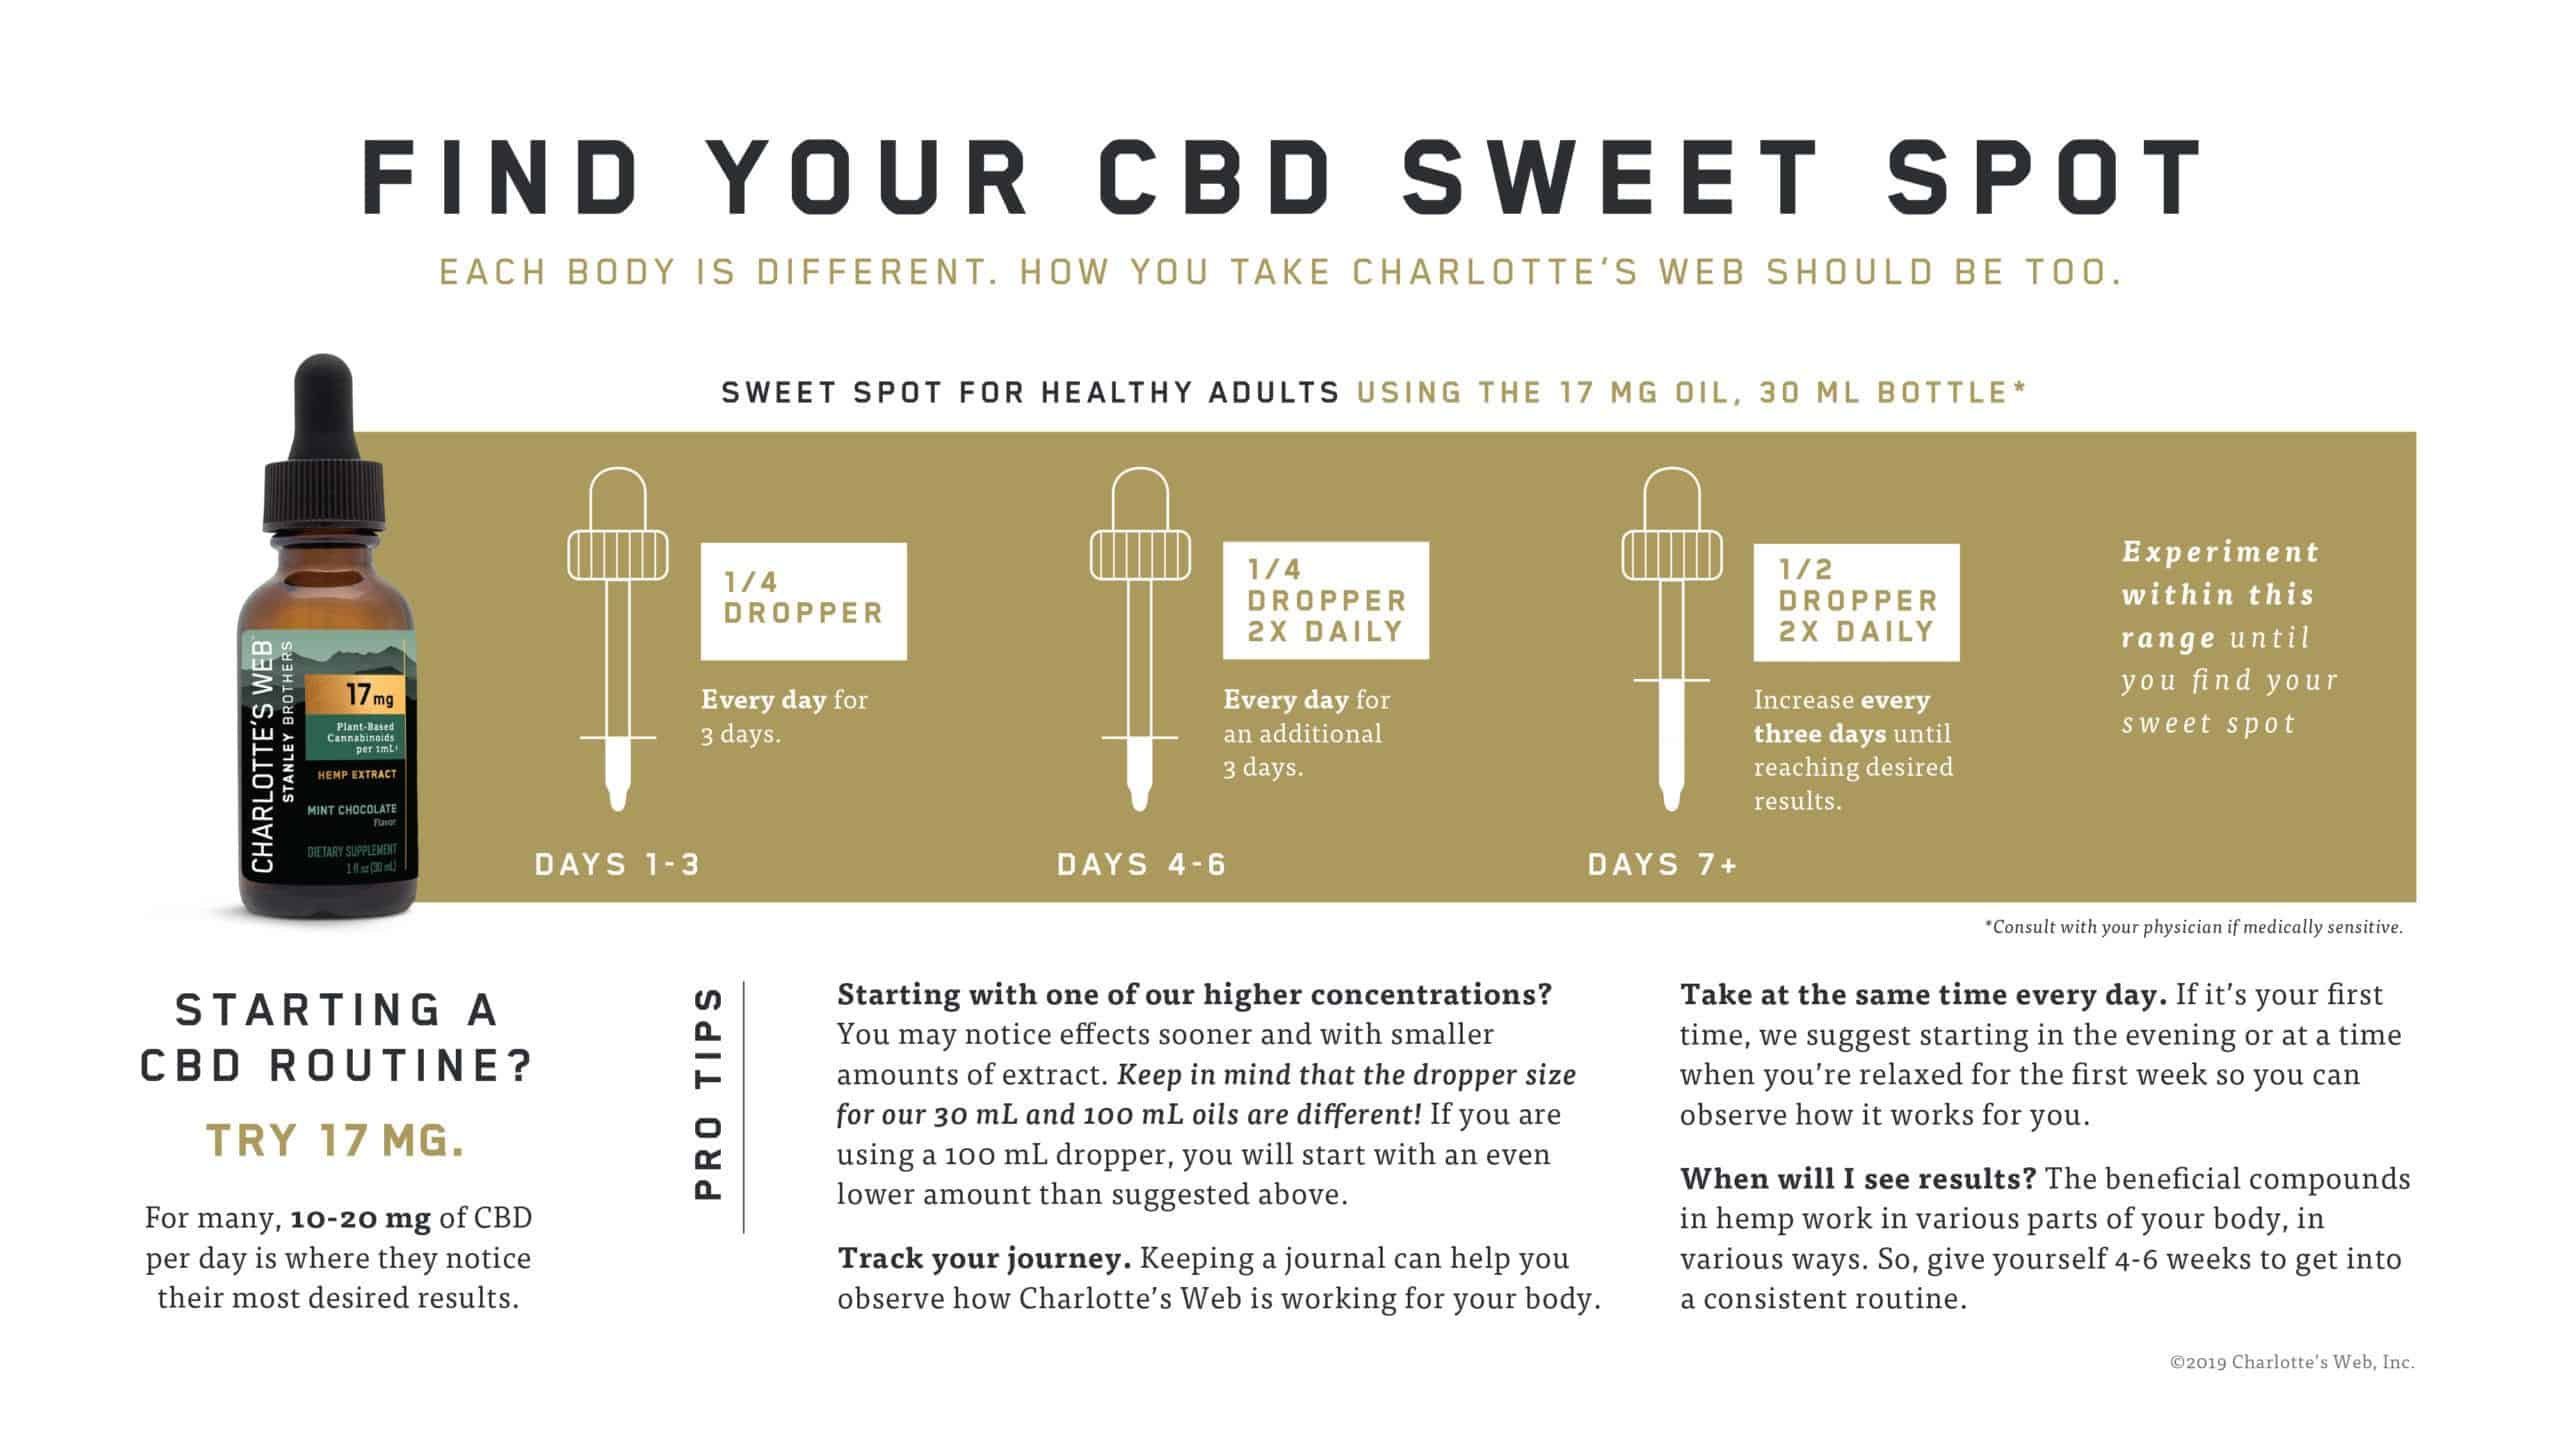 Learn what it feels like to use CBD, what you should know before taking CBD, and how to maximize your CBD regimen & results!